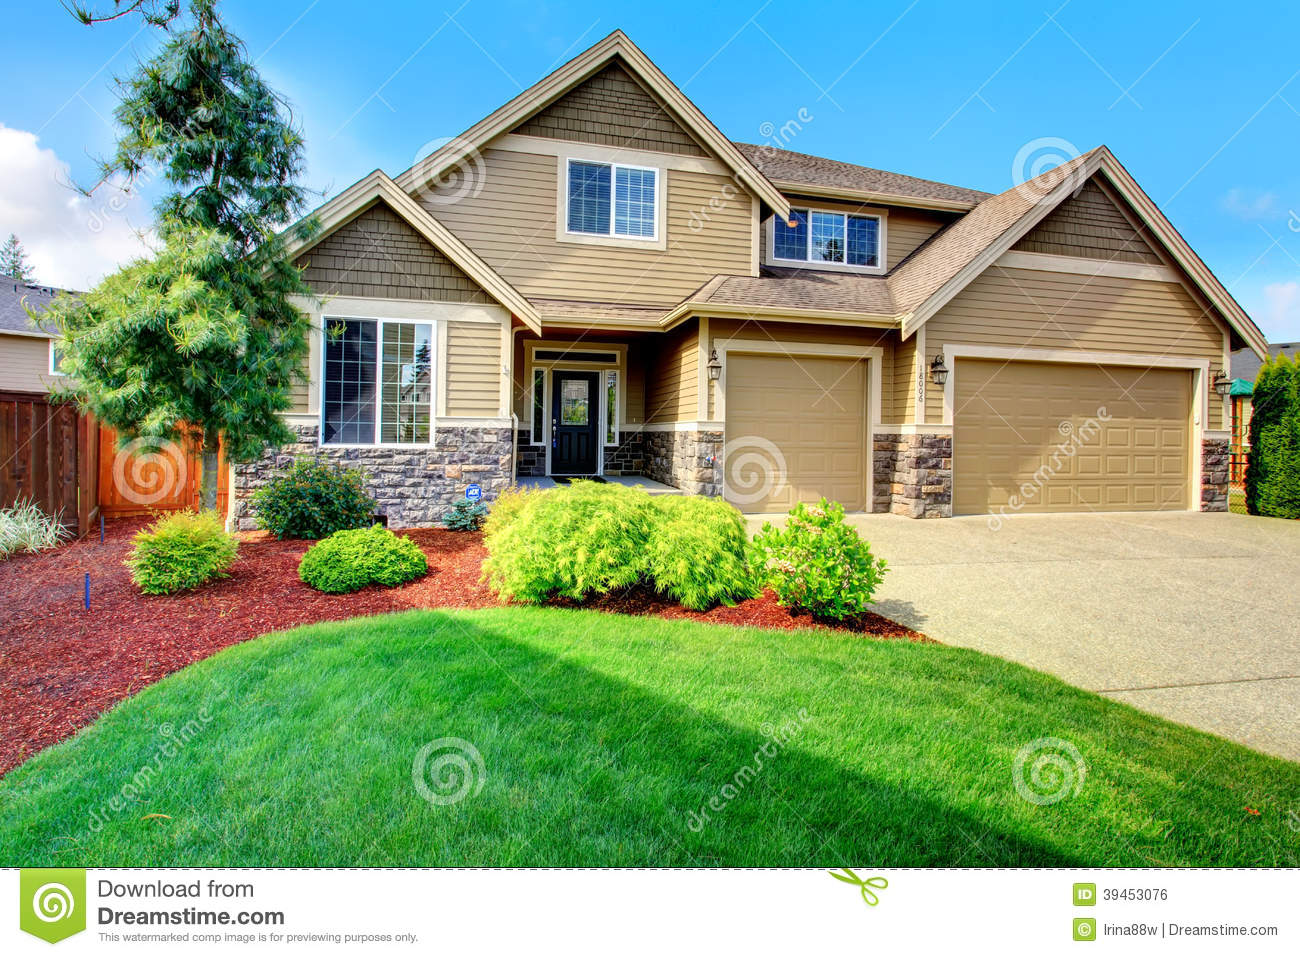 Luxury house ith beautiful curb appeal stock photo image for Beautiful luxury houses